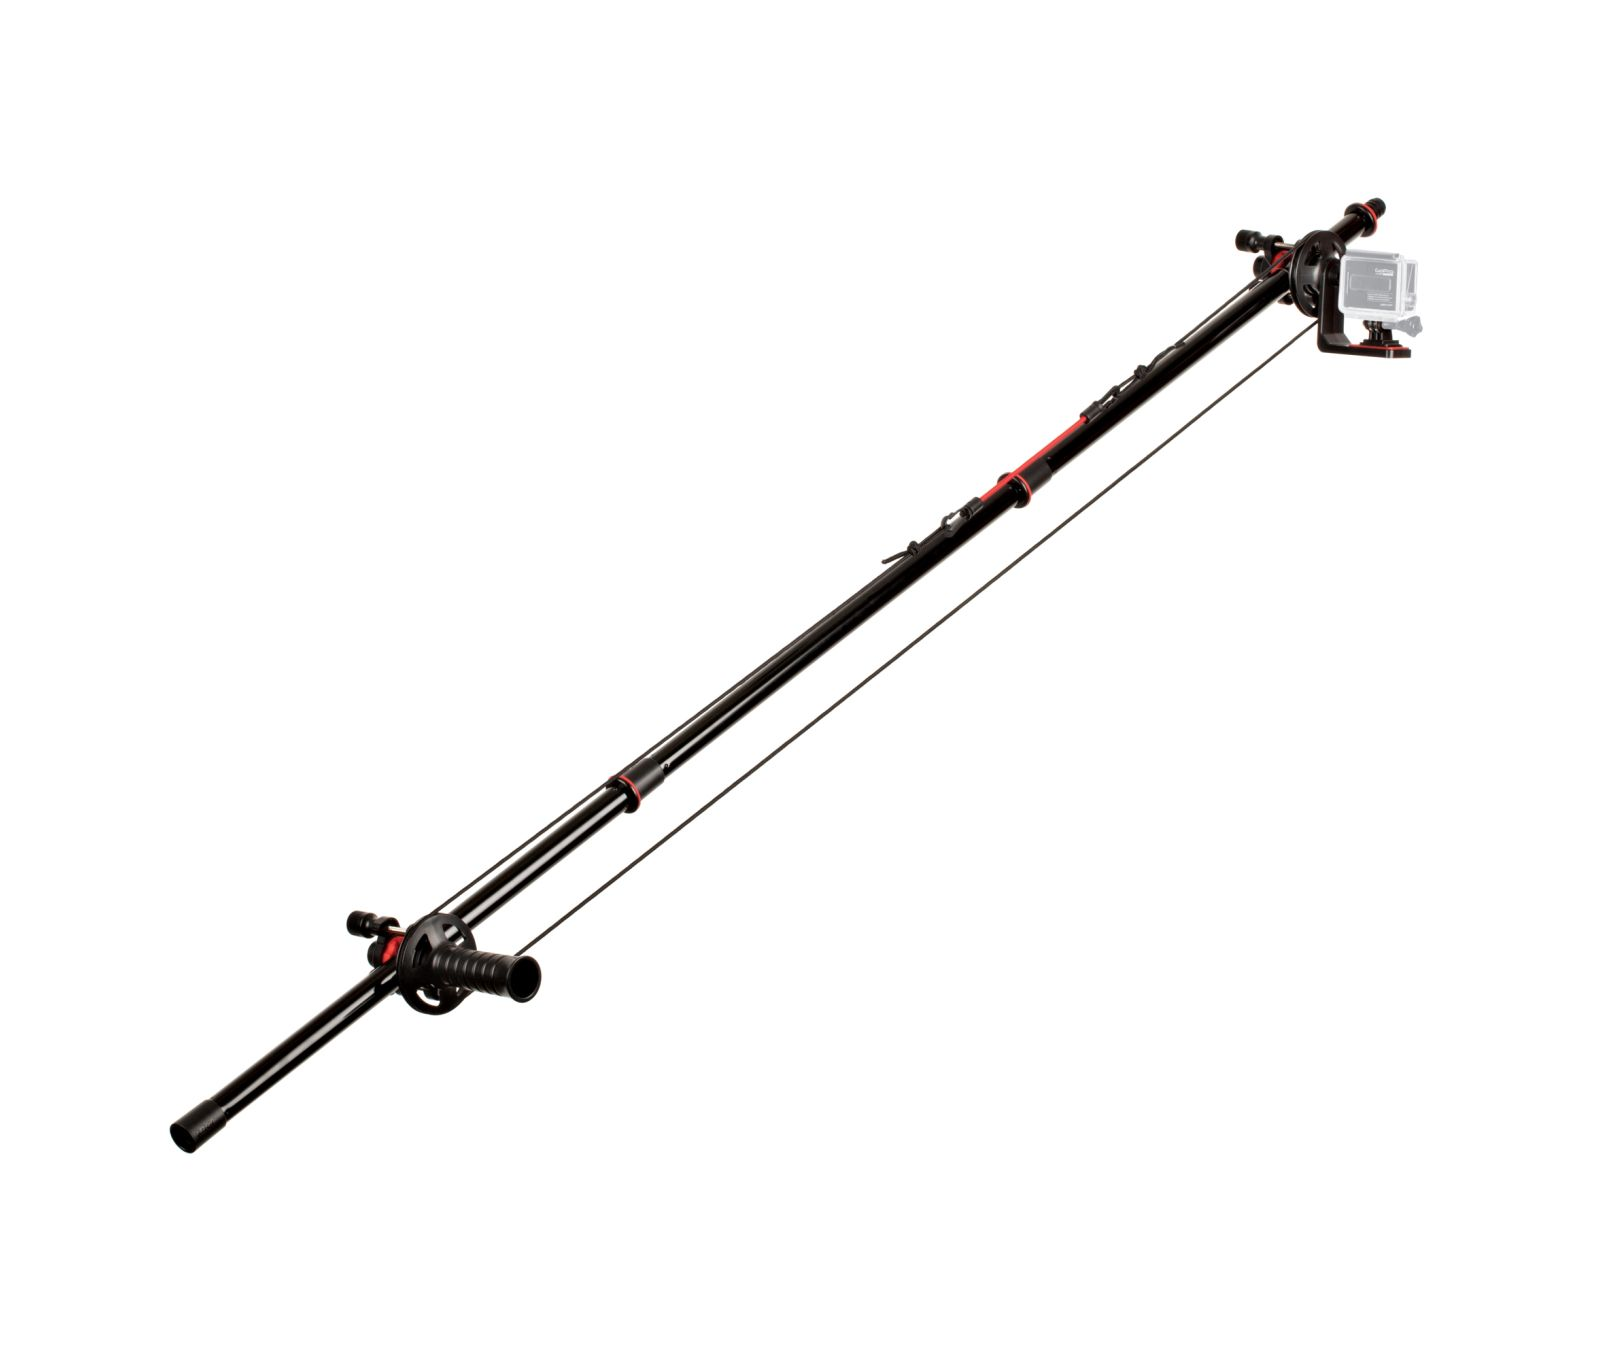 Action Jib Kit & Pole (Negro/Rojo)